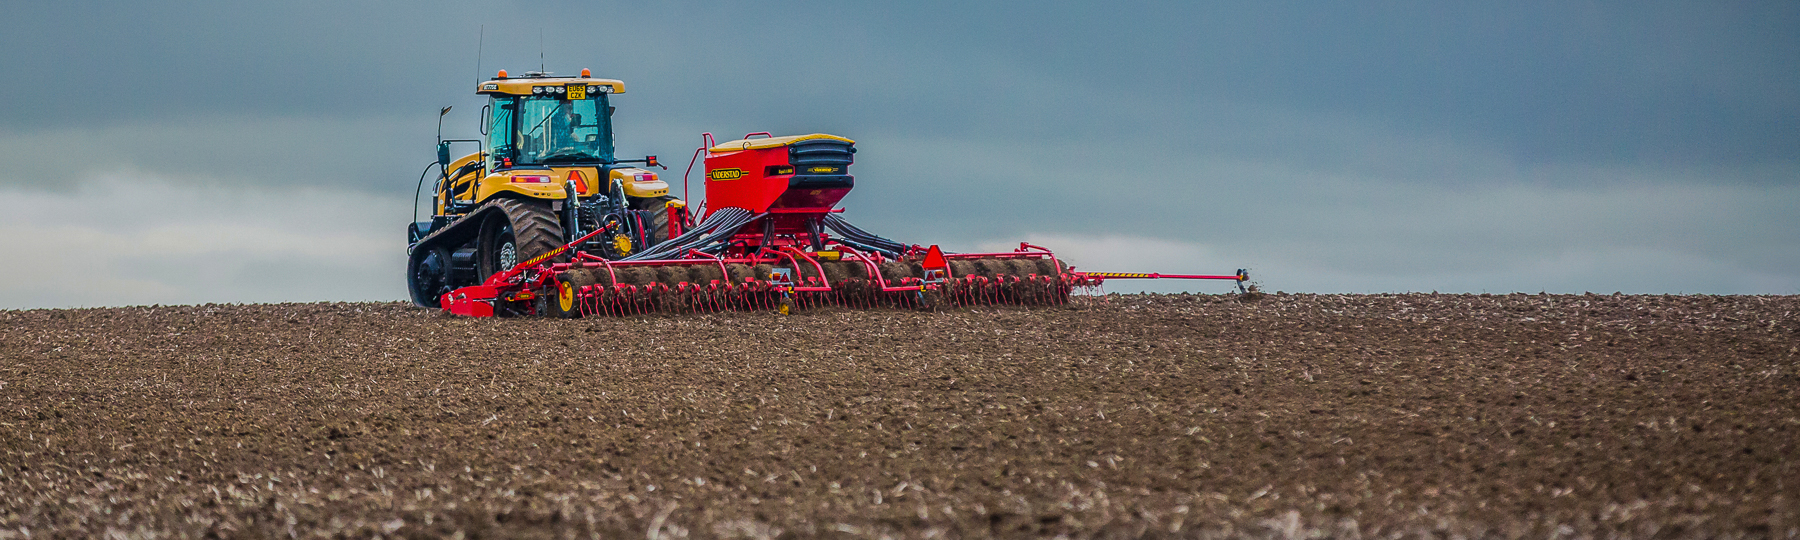 Väderstad Seed drill Rapid A in field under stormy clouds